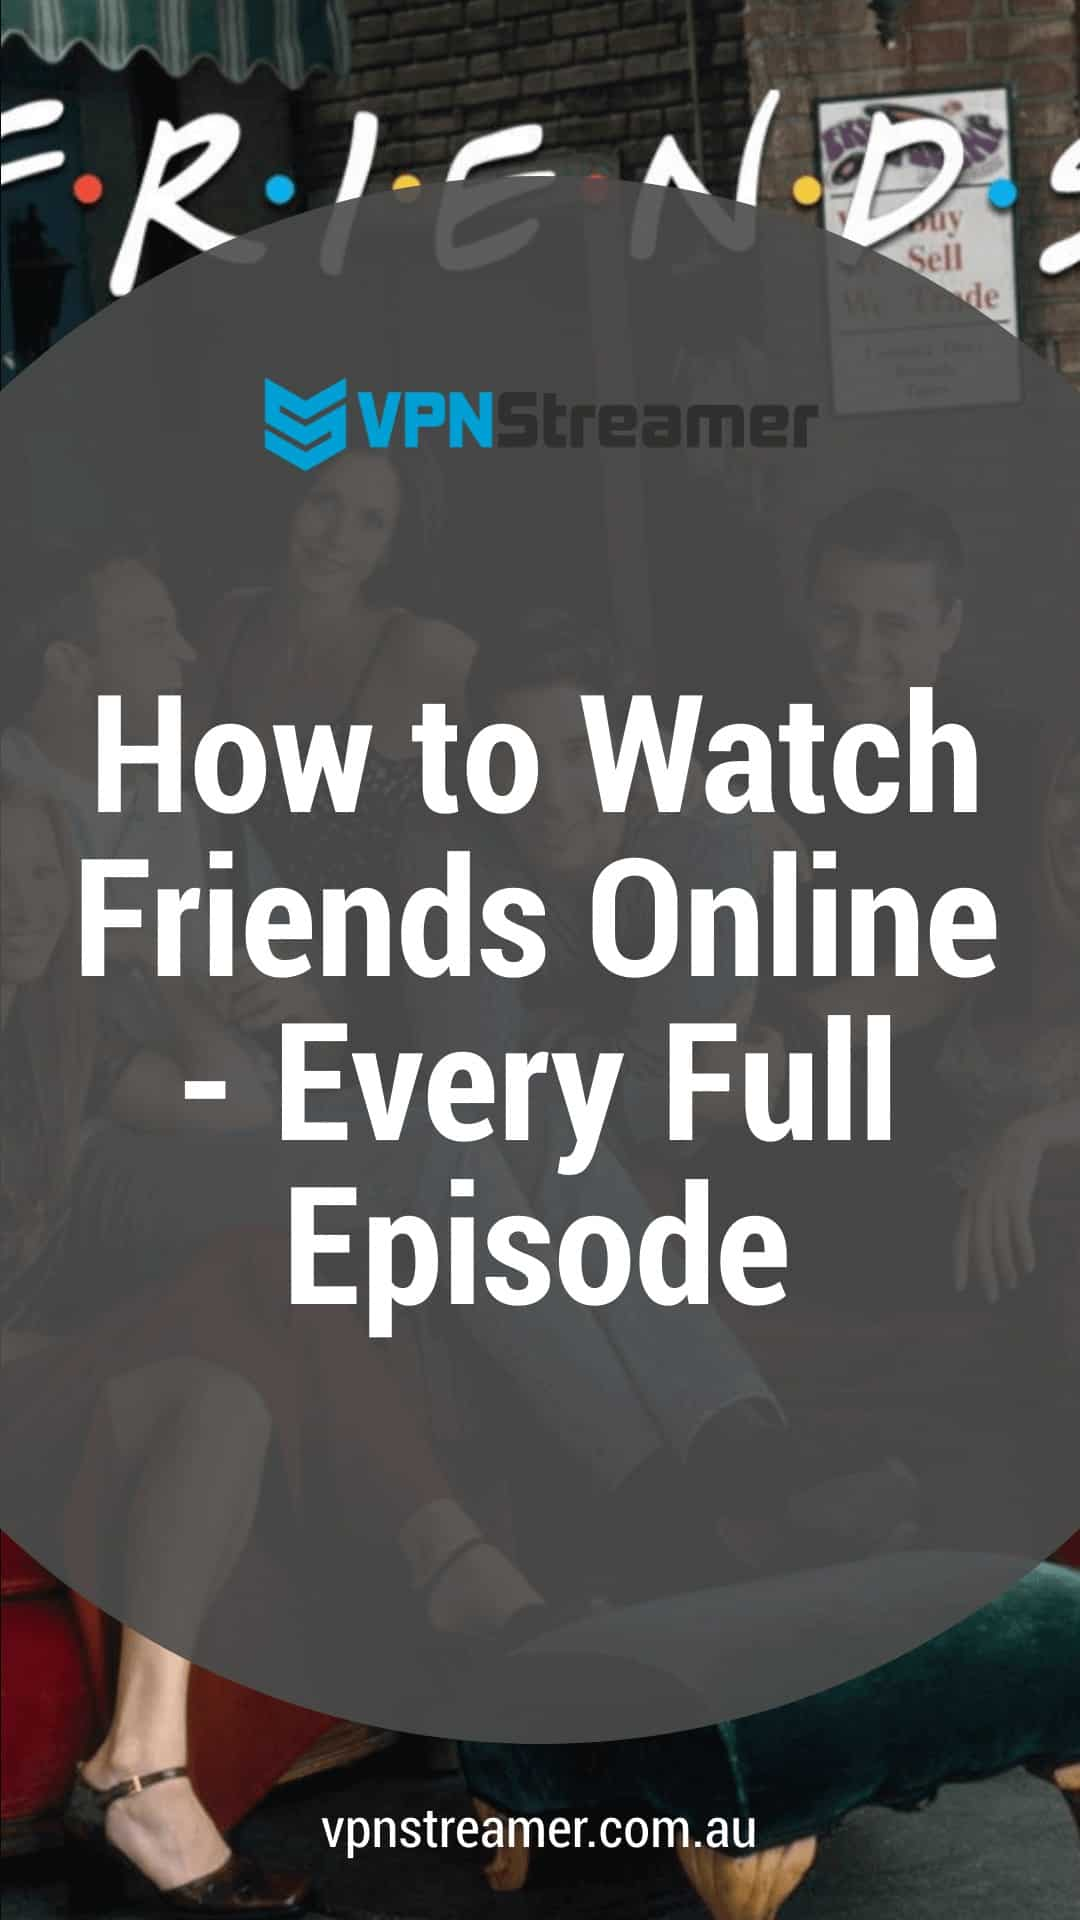 How to Watch Friends Online - Every Full Episode